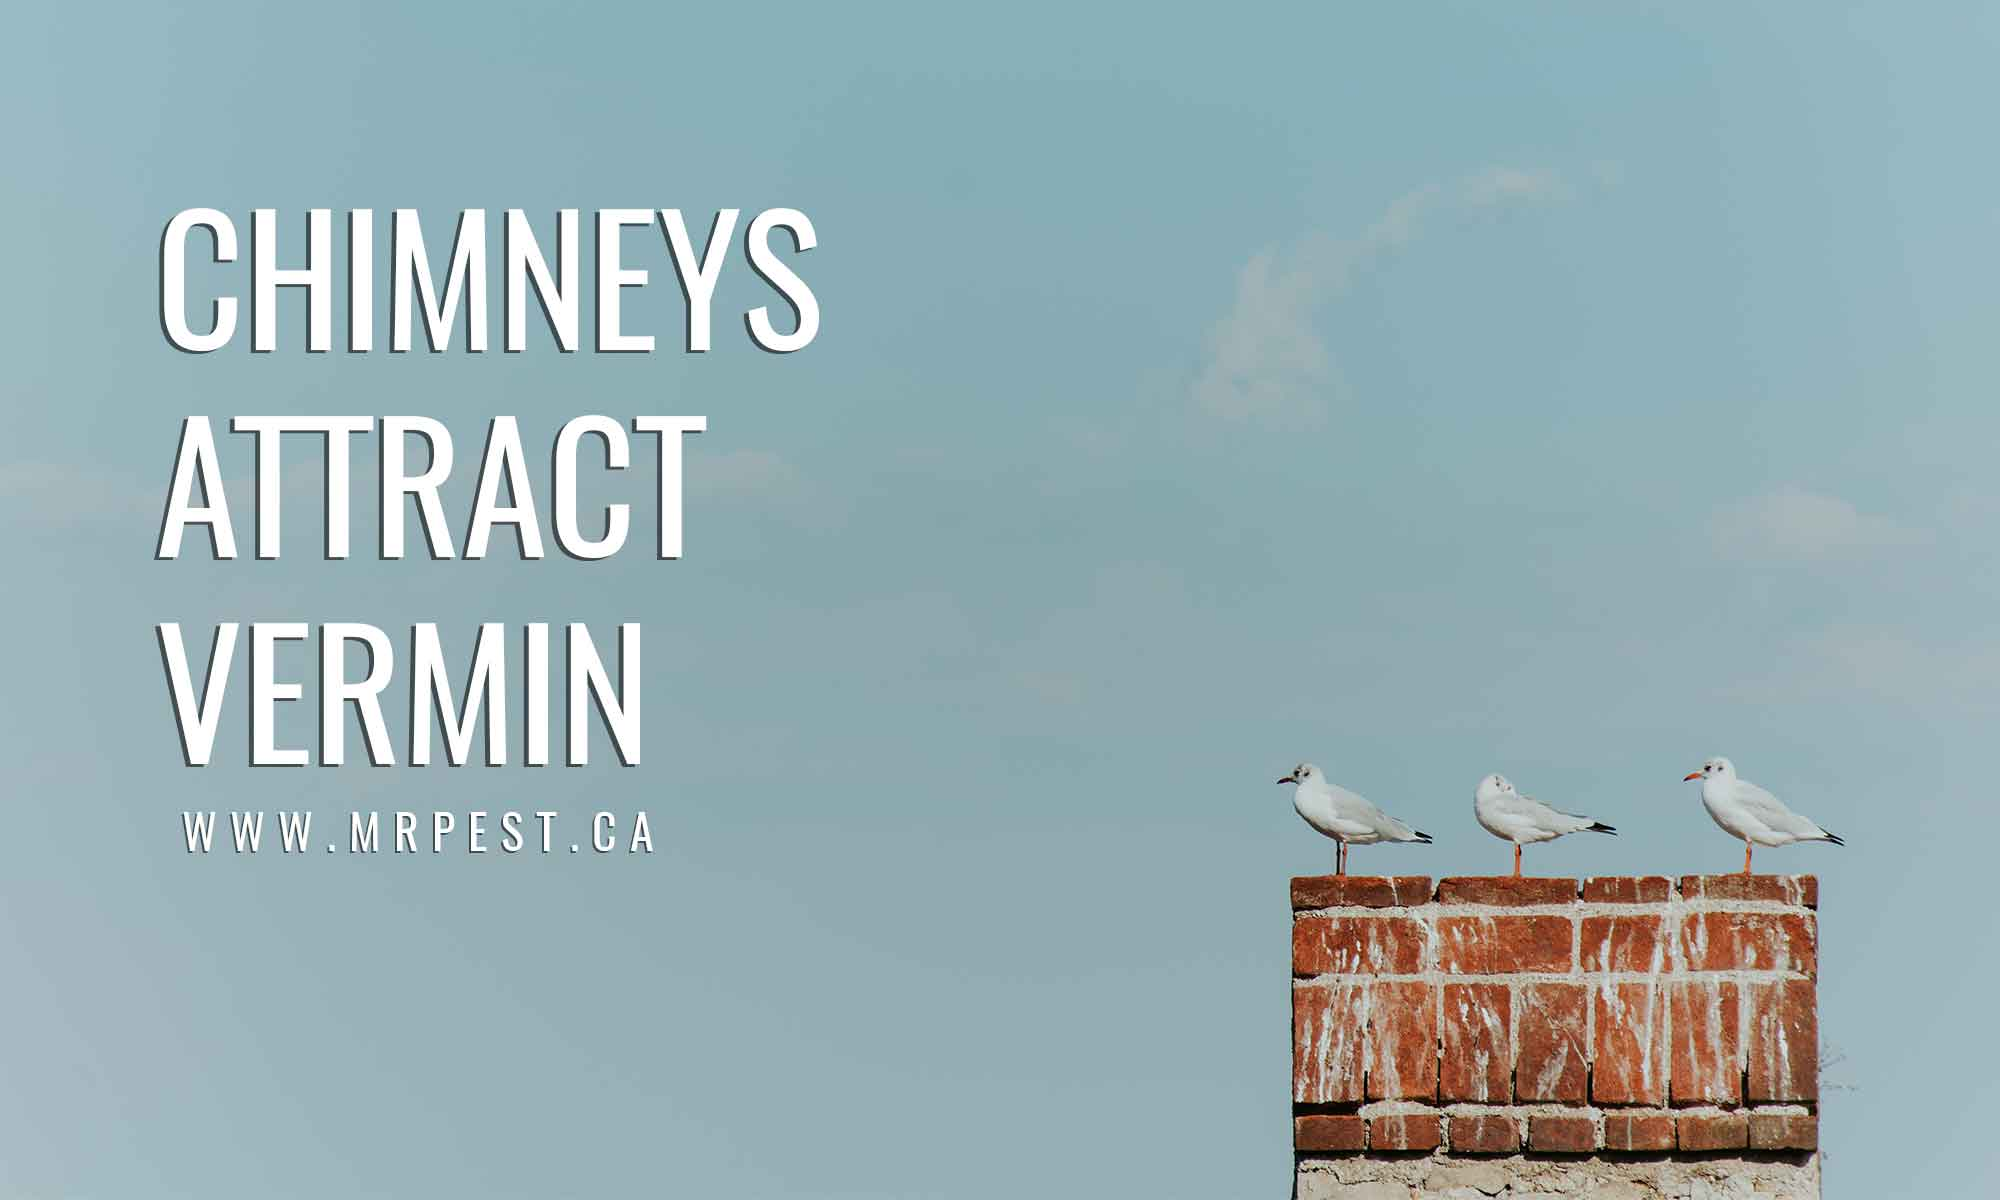 chimneys attract vermin